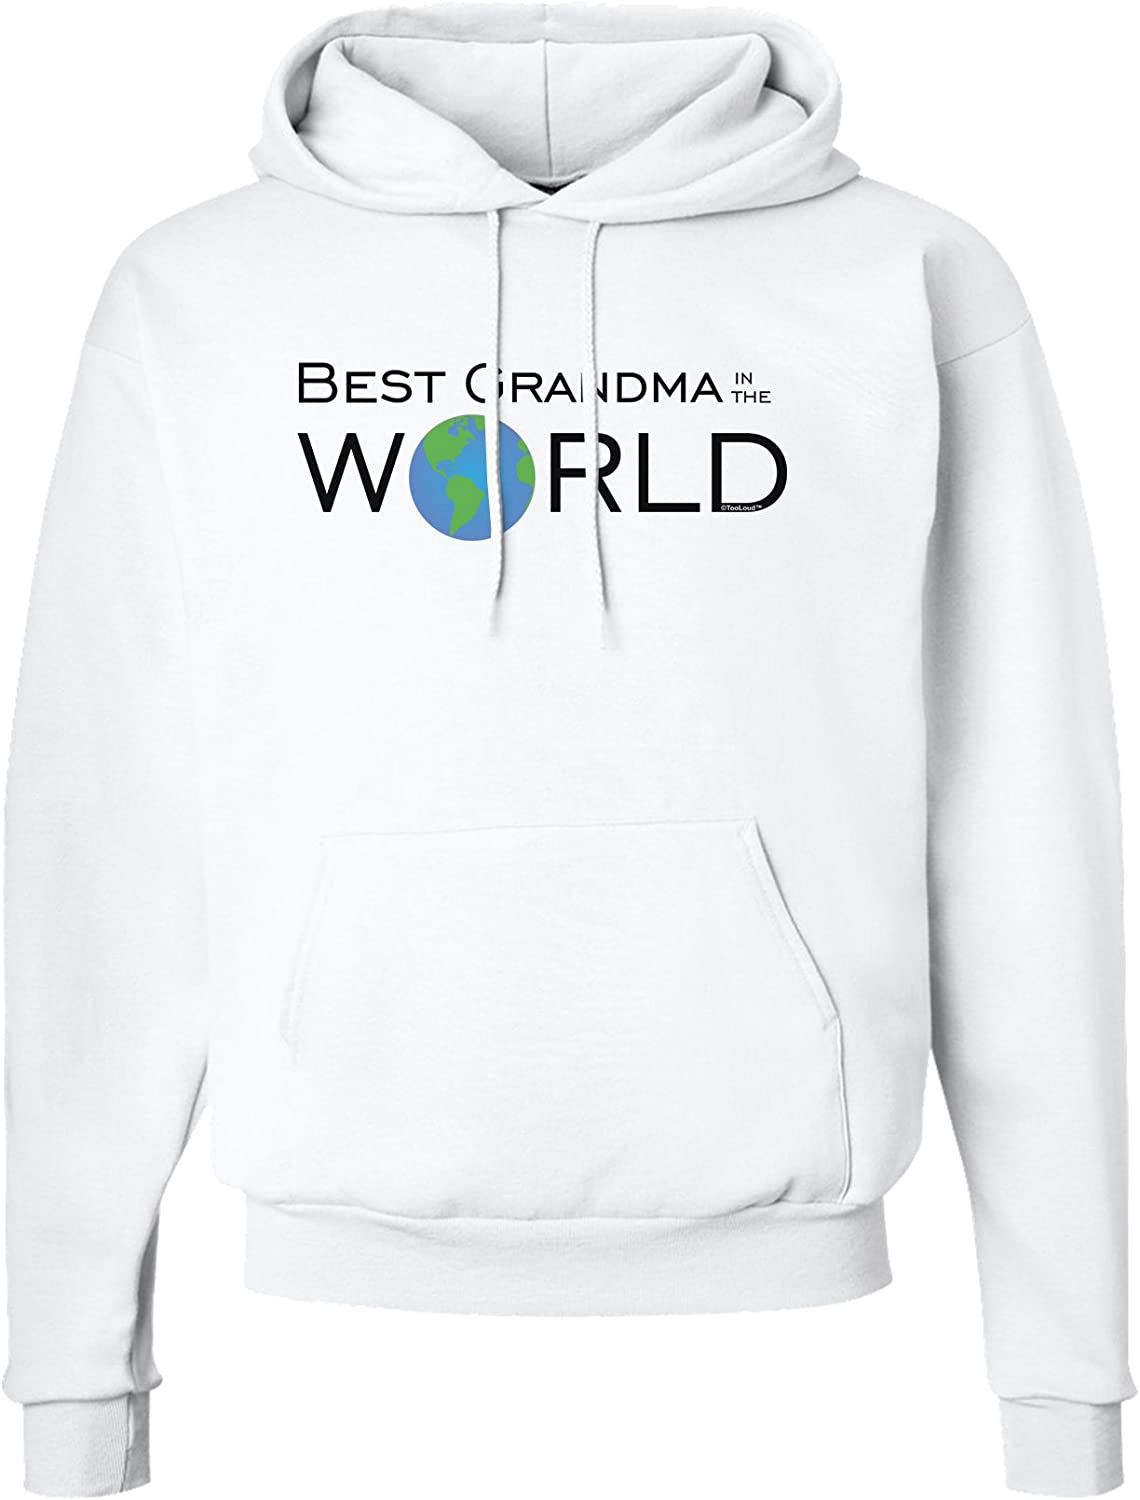 Best Grandma in The World Hoodie Sweatshirt